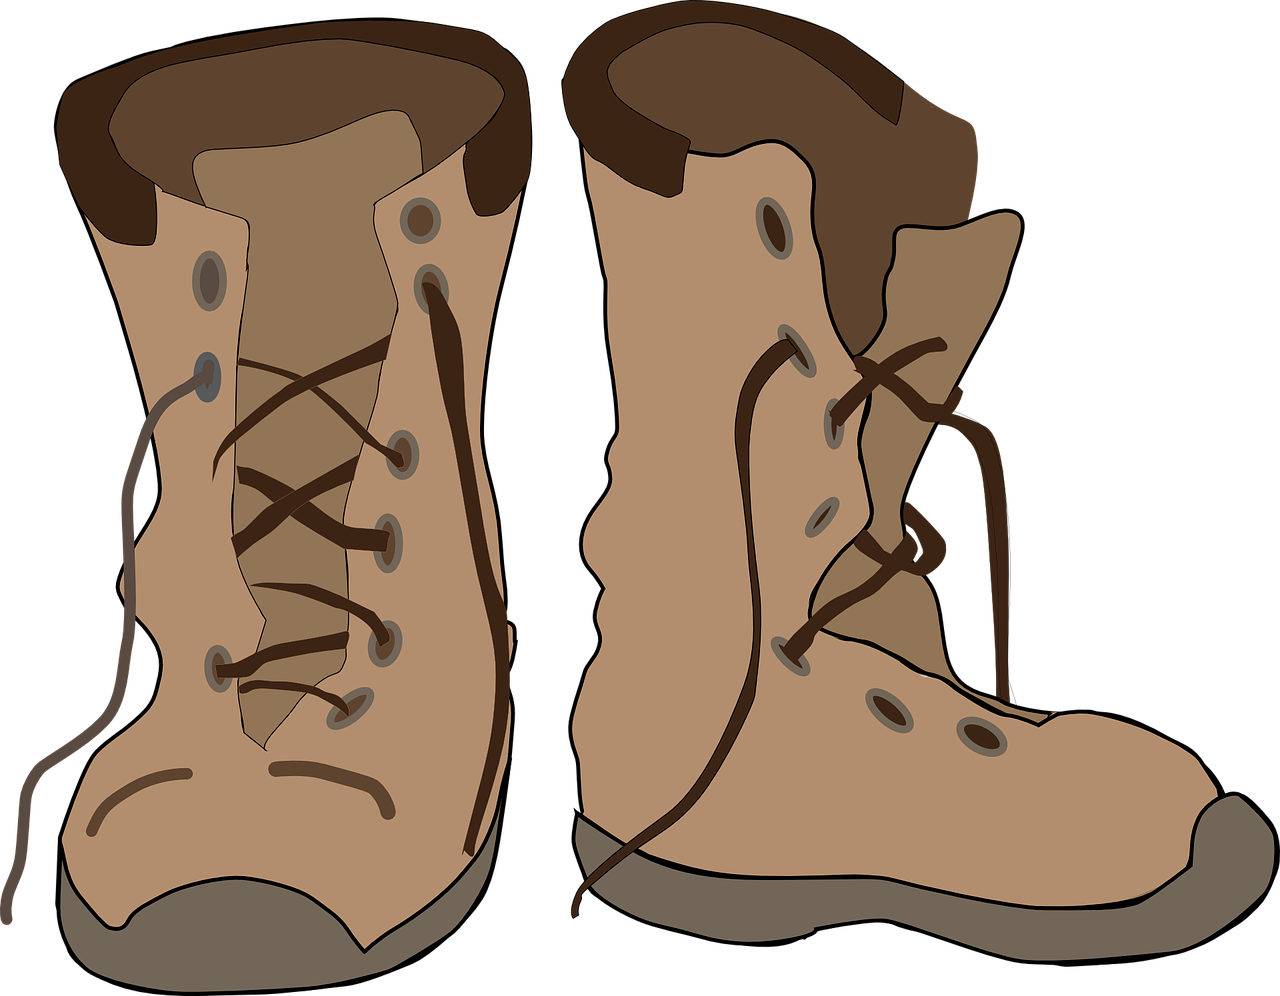 Leather boots clipart transparent download Free Brown Shoes Cliparts, Download Free Clip Art, Free Clip Art on ... transparent download